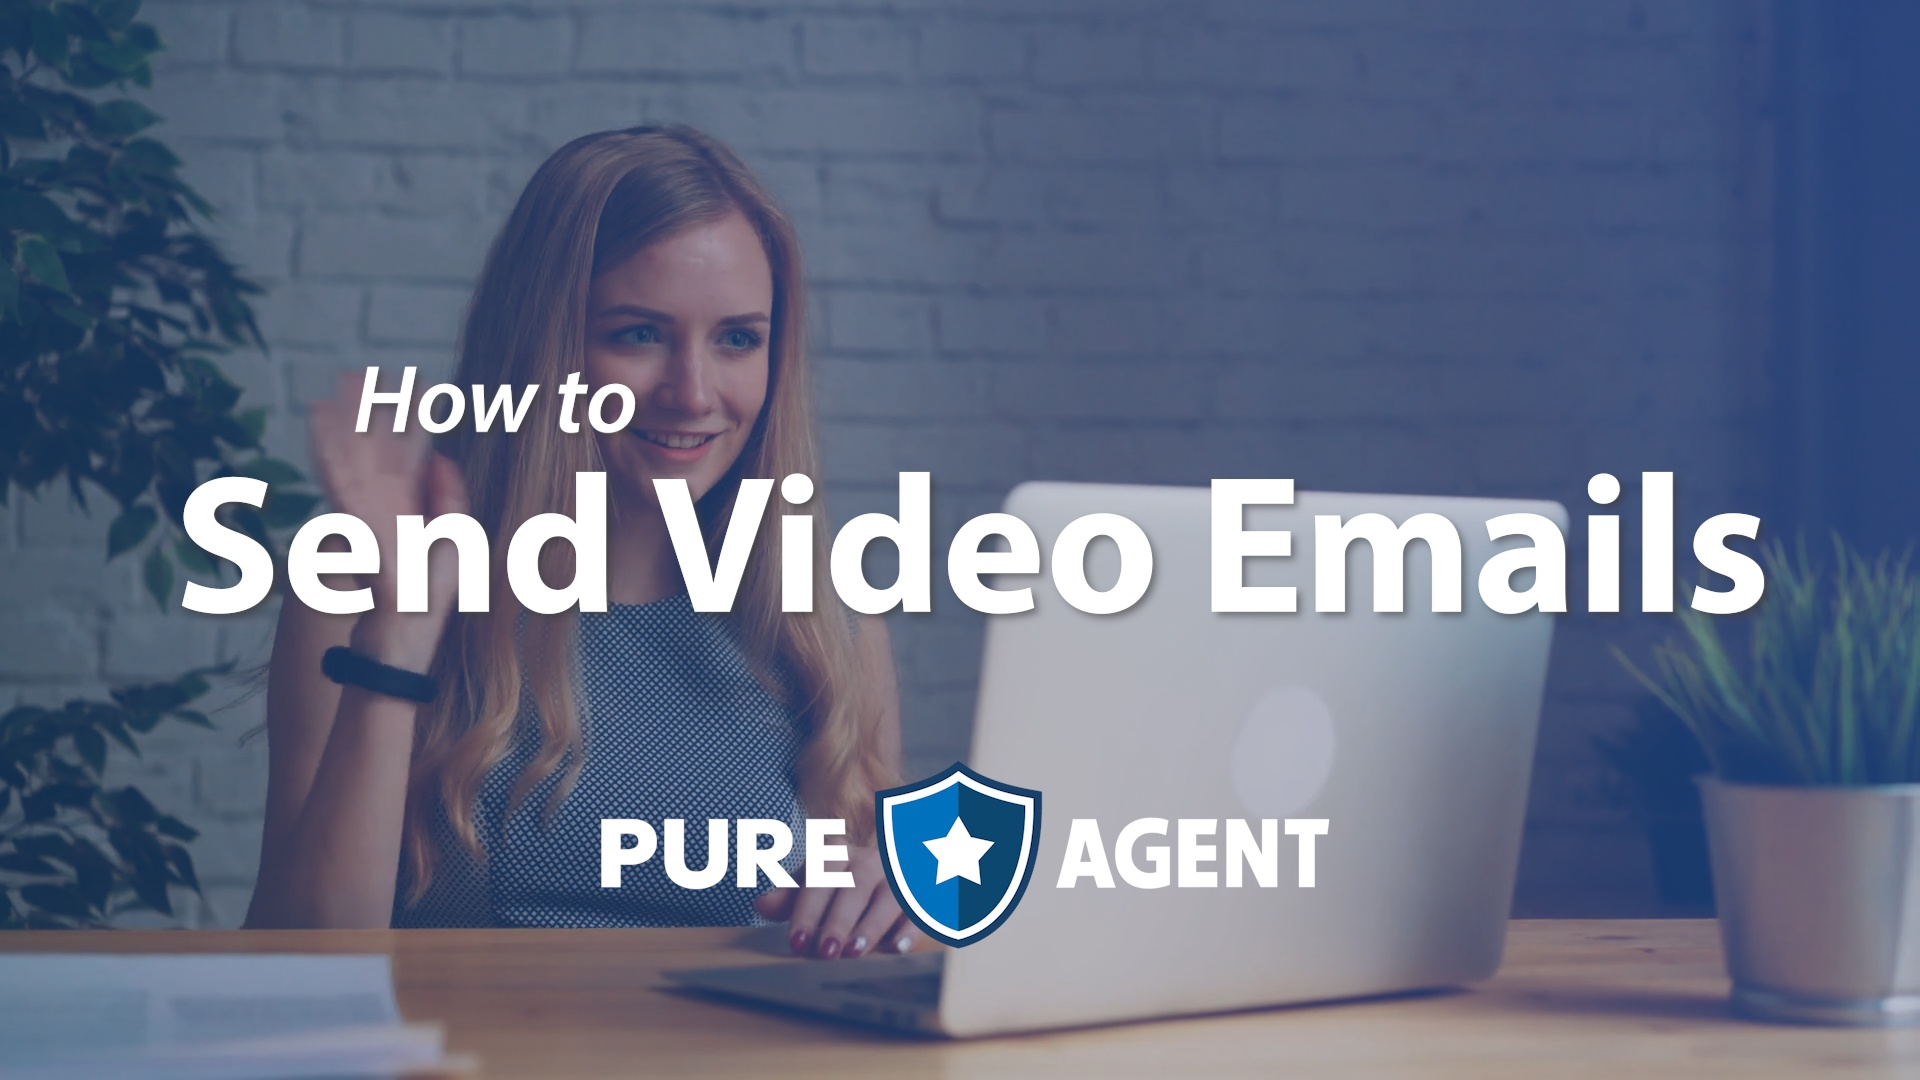 How To Video - Send Video Emails with PureAgent